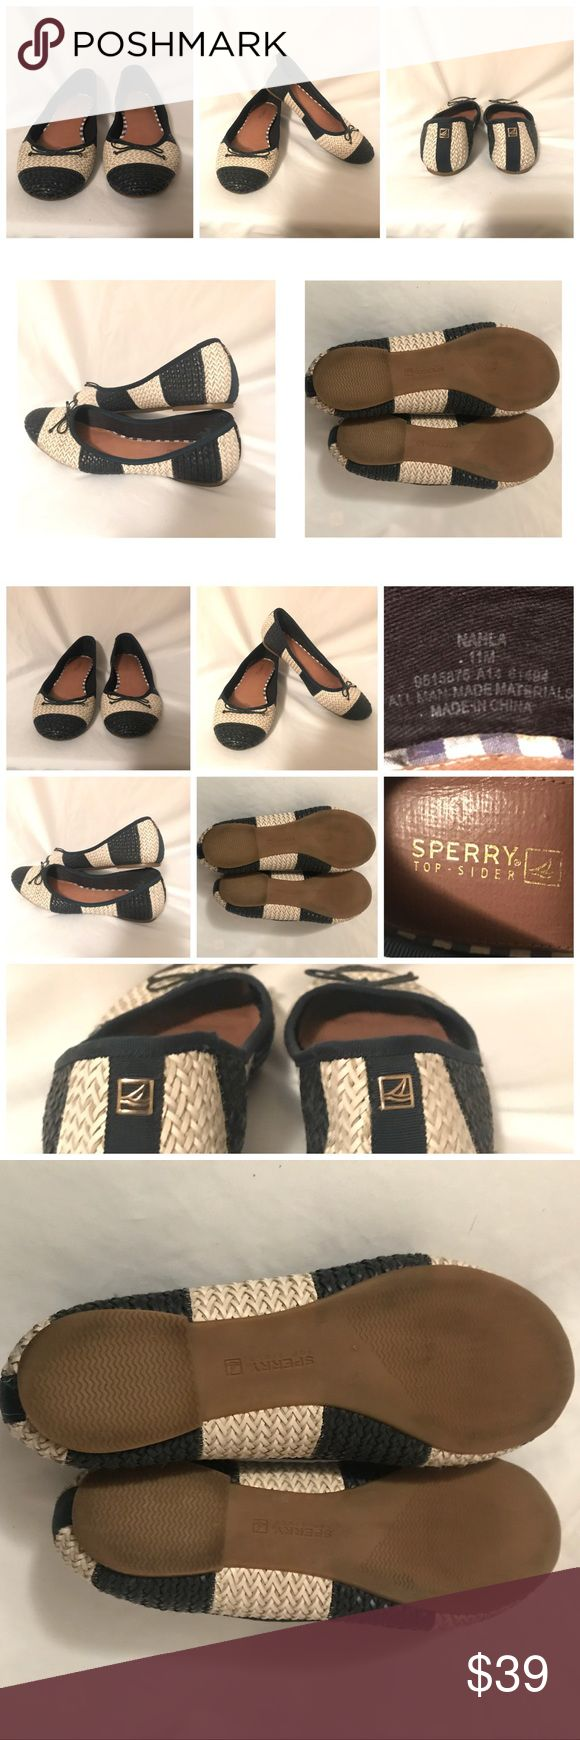 🎃👻 SALE Sperry Top-Sider Ballet Flats Woven Sperry Women's Top-Sider Nahla Ballet Flats Woven Striped Navy Blue Size 11M Sperry Shoes Flats & Loafers